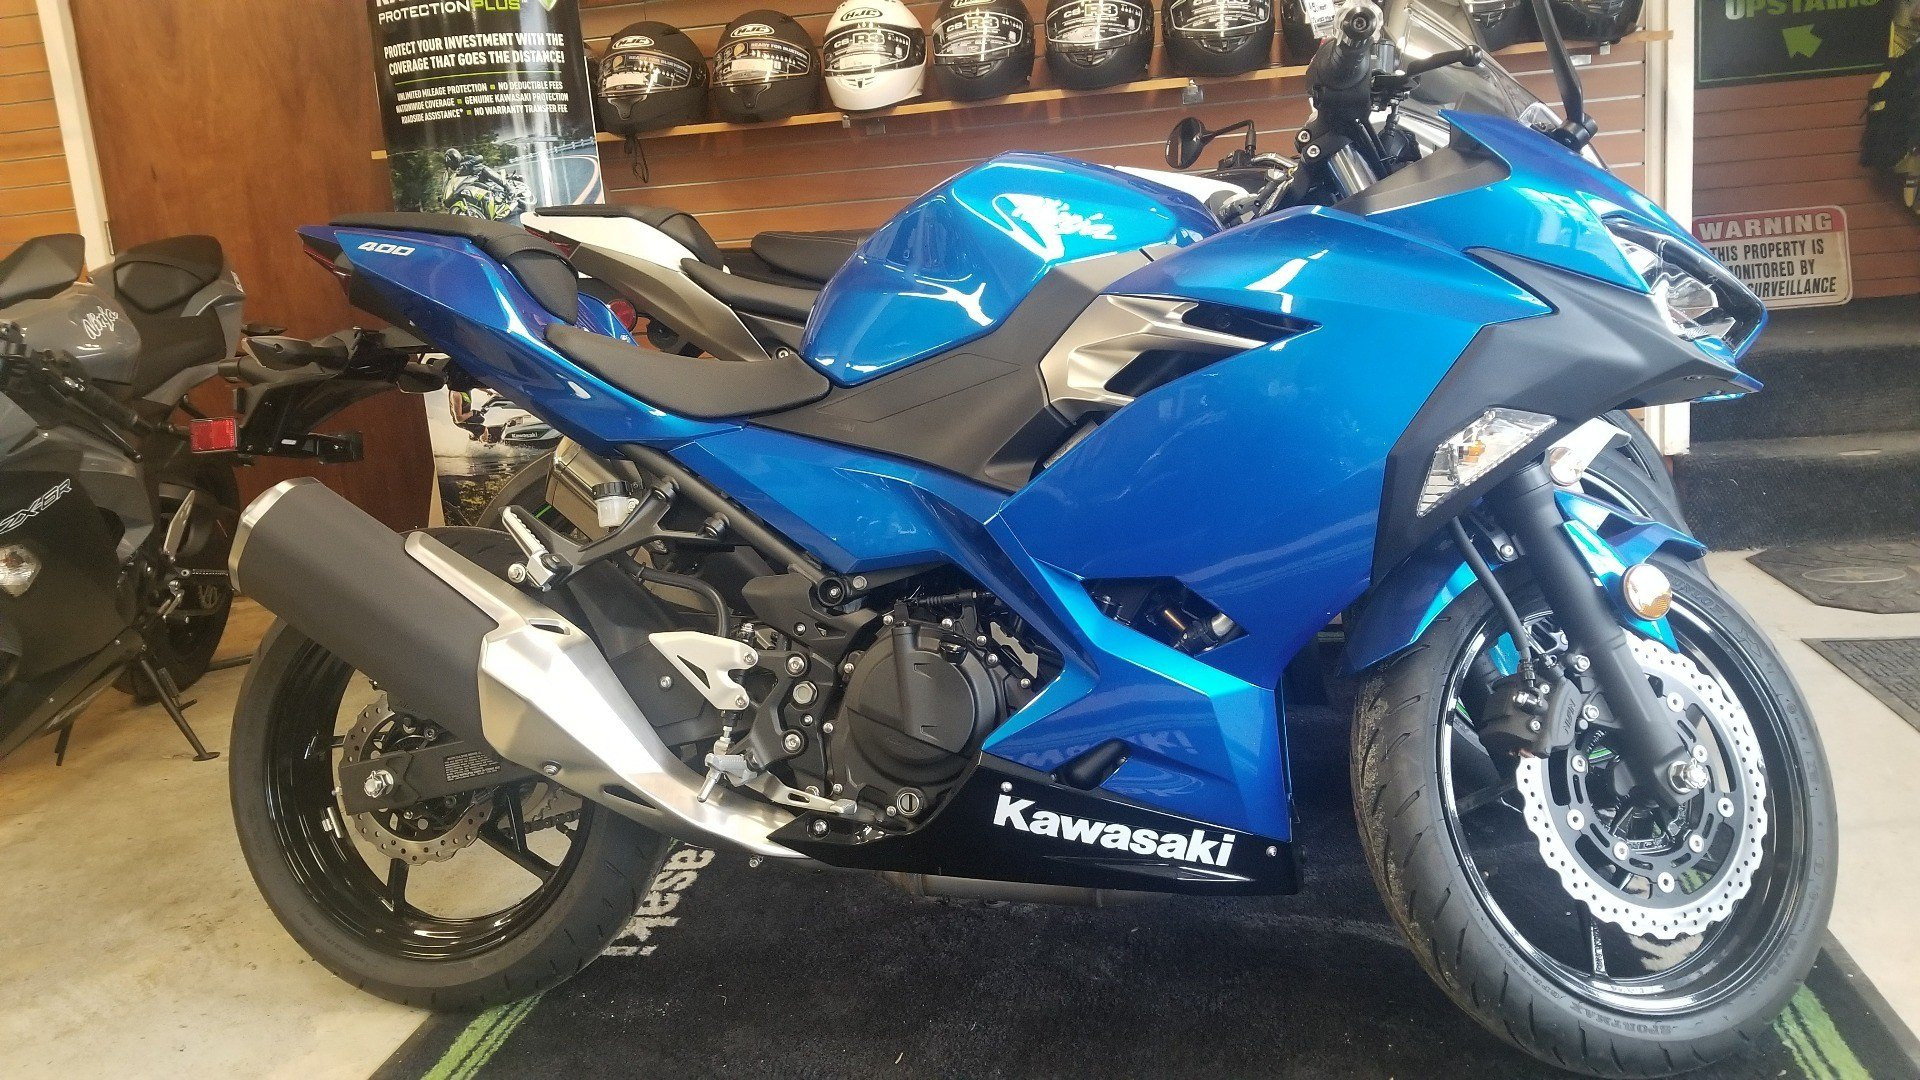 2018 Kawasaki Ninja 400 for sale 8932